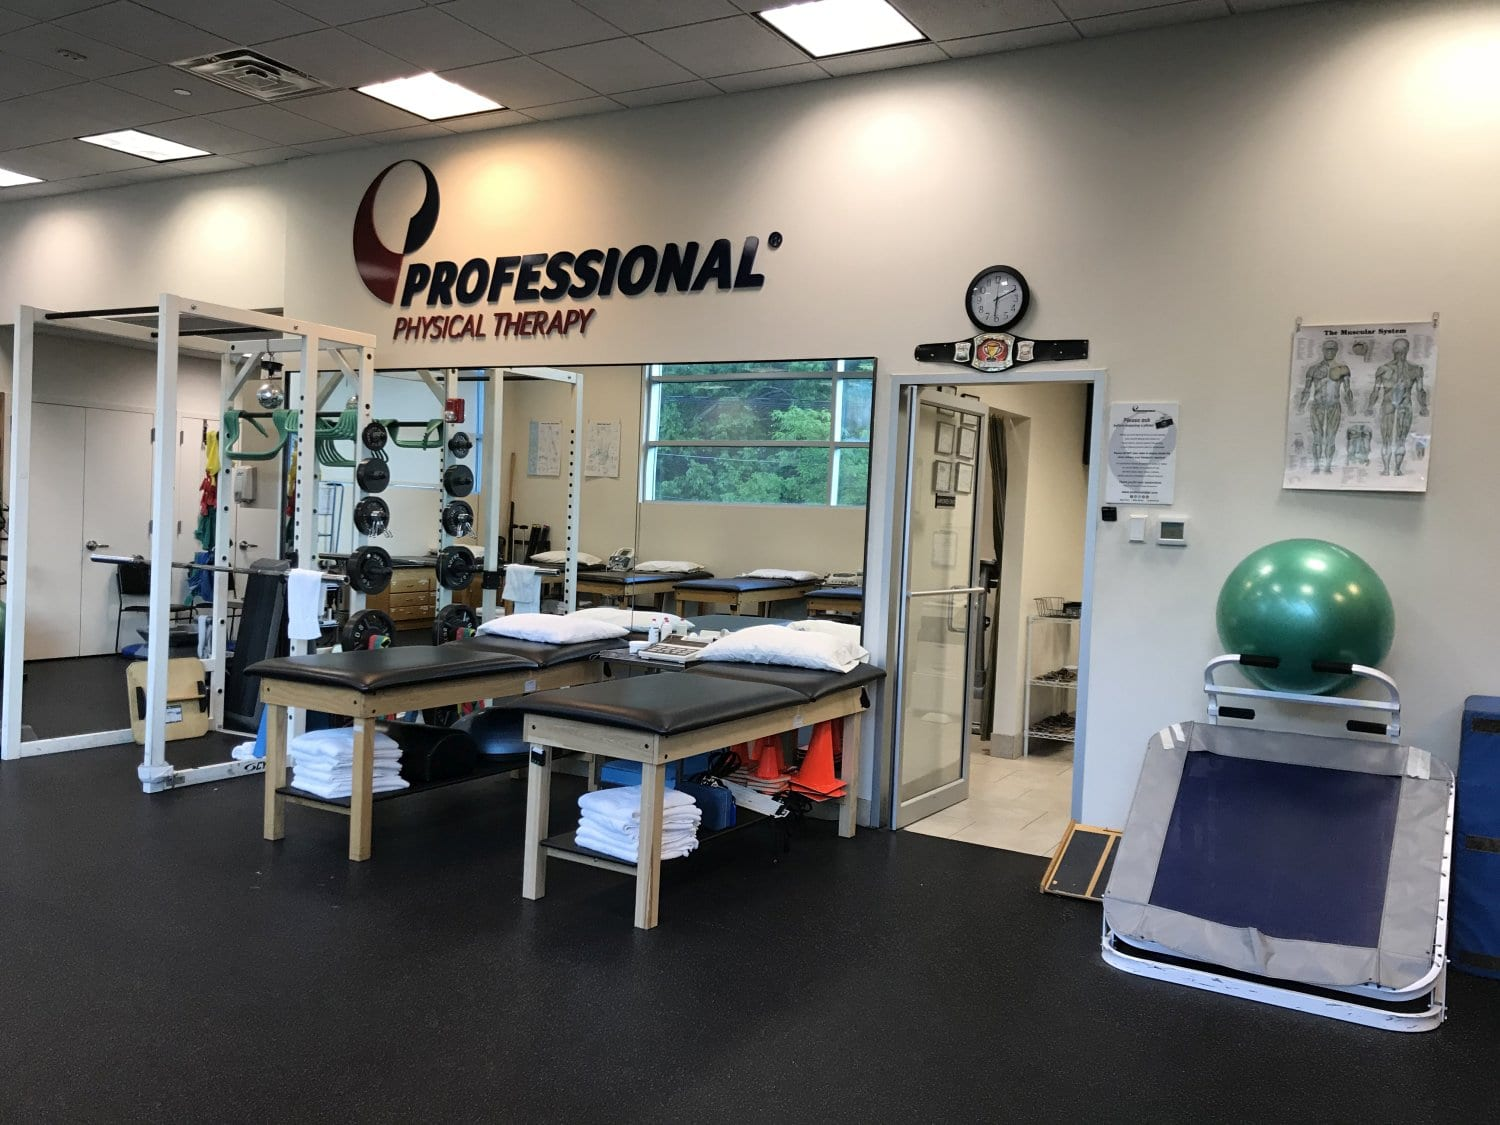 This is an image of exercise equipment at our physical therapy clinic in Great Neck, New York.